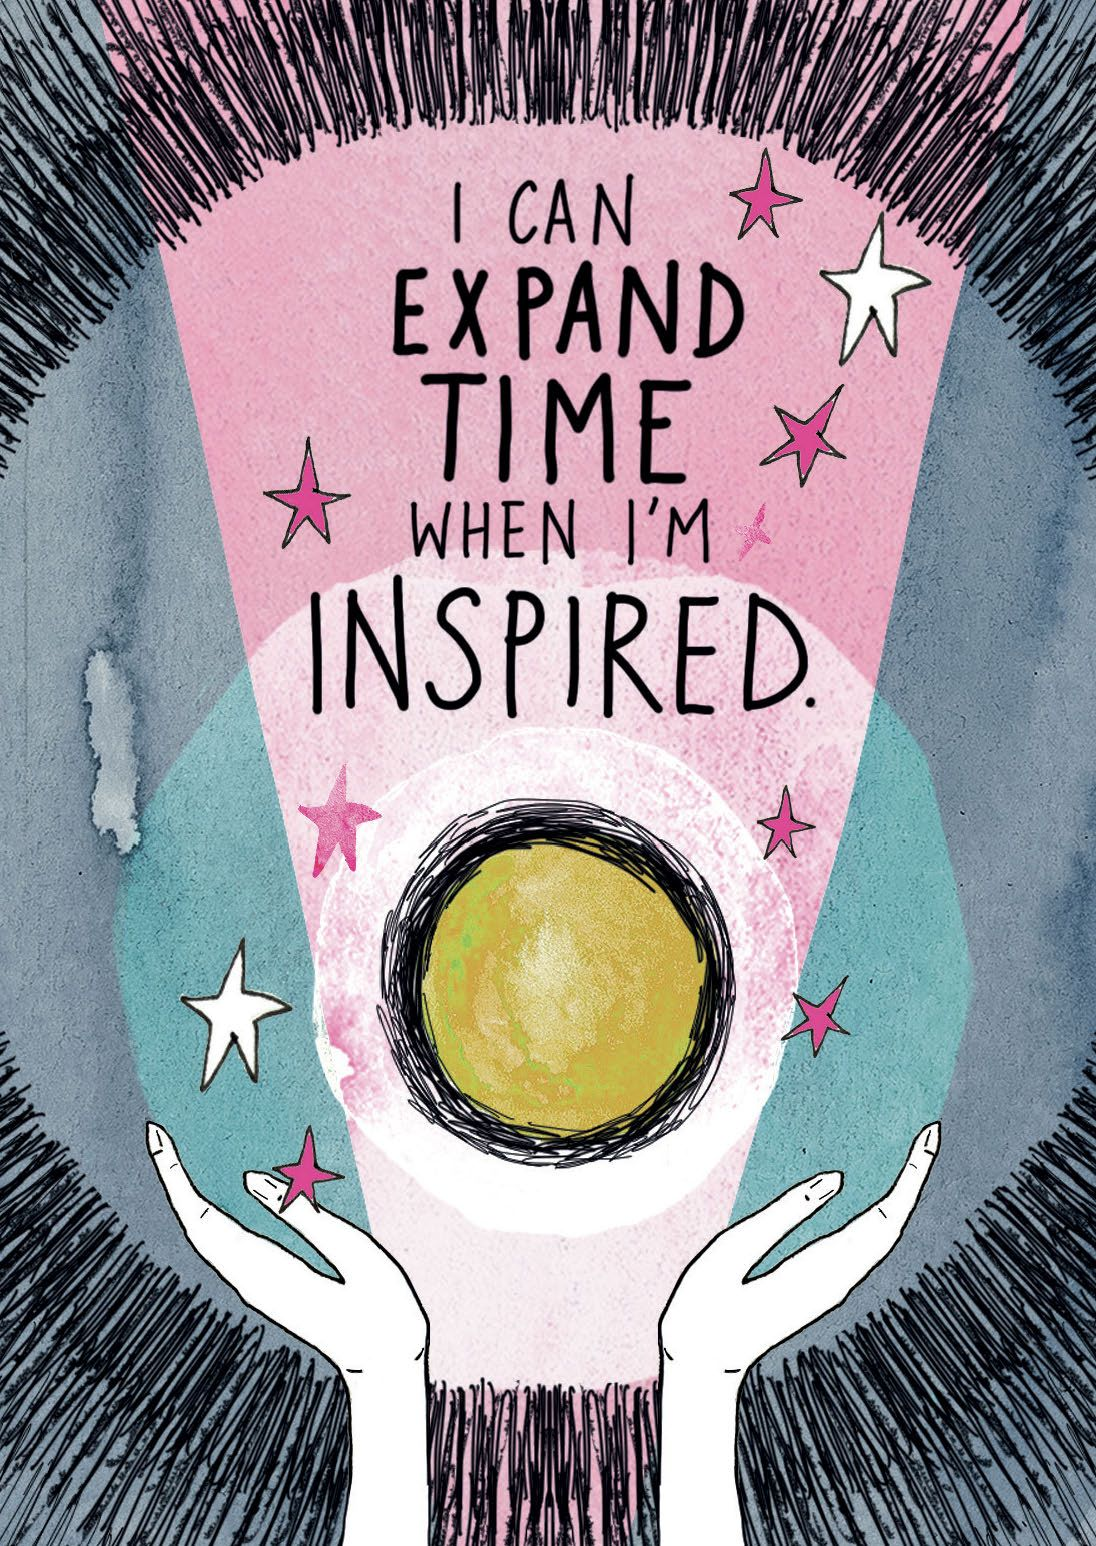 I CAN EXPAND TIME WHEN I'M INSPIRED.